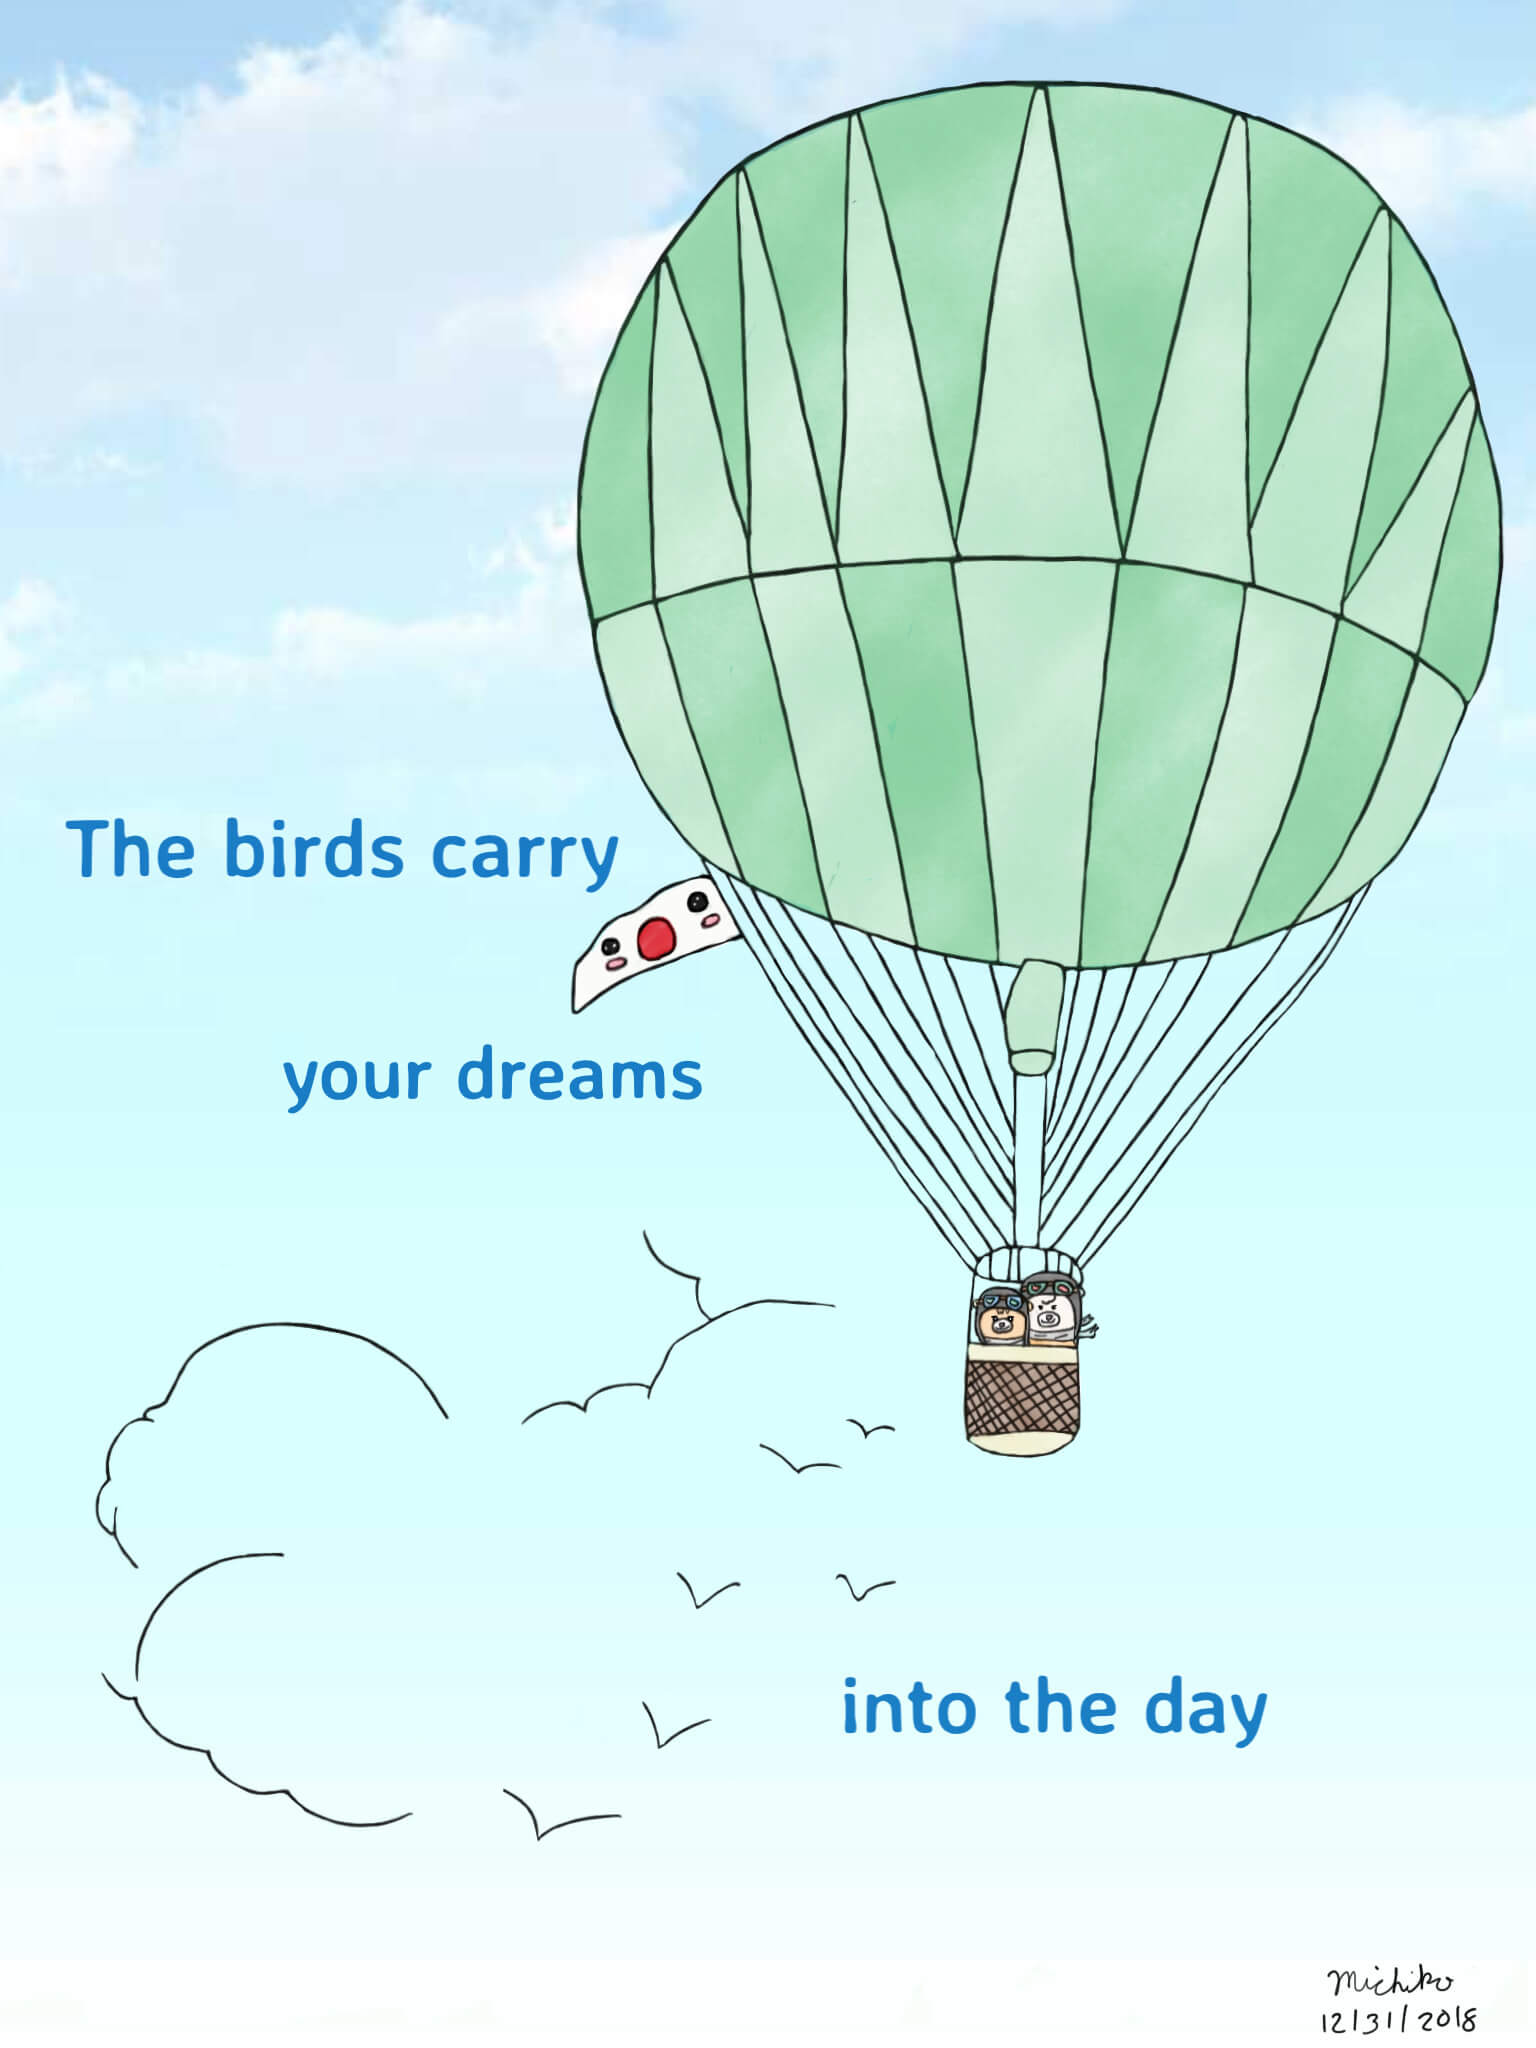 The birds carry your dreams into the day